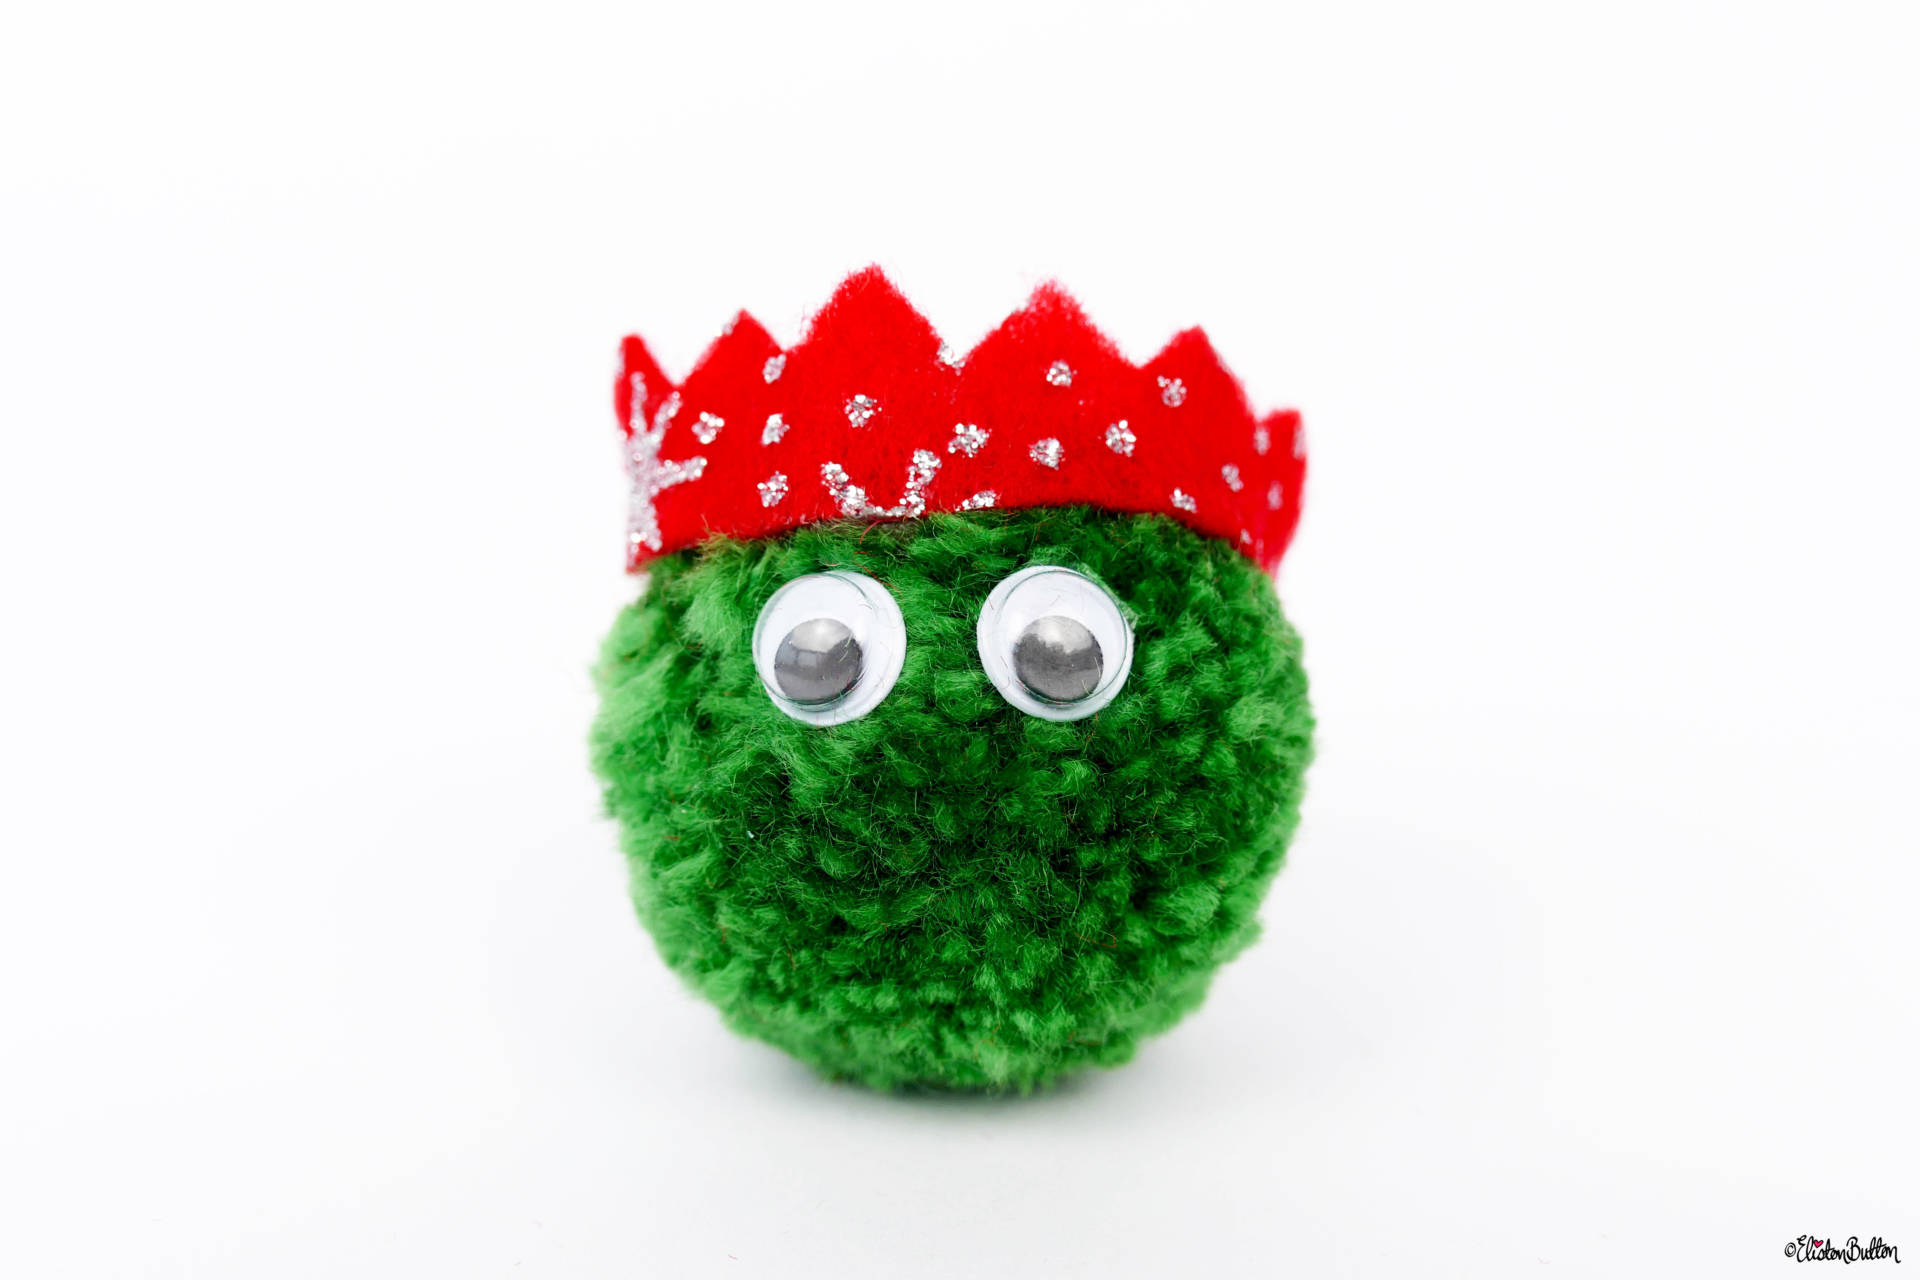 Dark Green Christmas Sprout Pom Pom Brooch with Red Glitter Party Hat by Eliston Button - Christmas Sprout Pom Pom Brooches! at www.elistonbutton.com - Eliston Button - That Crafty Kid – Art, Design, Craft & Adventure.